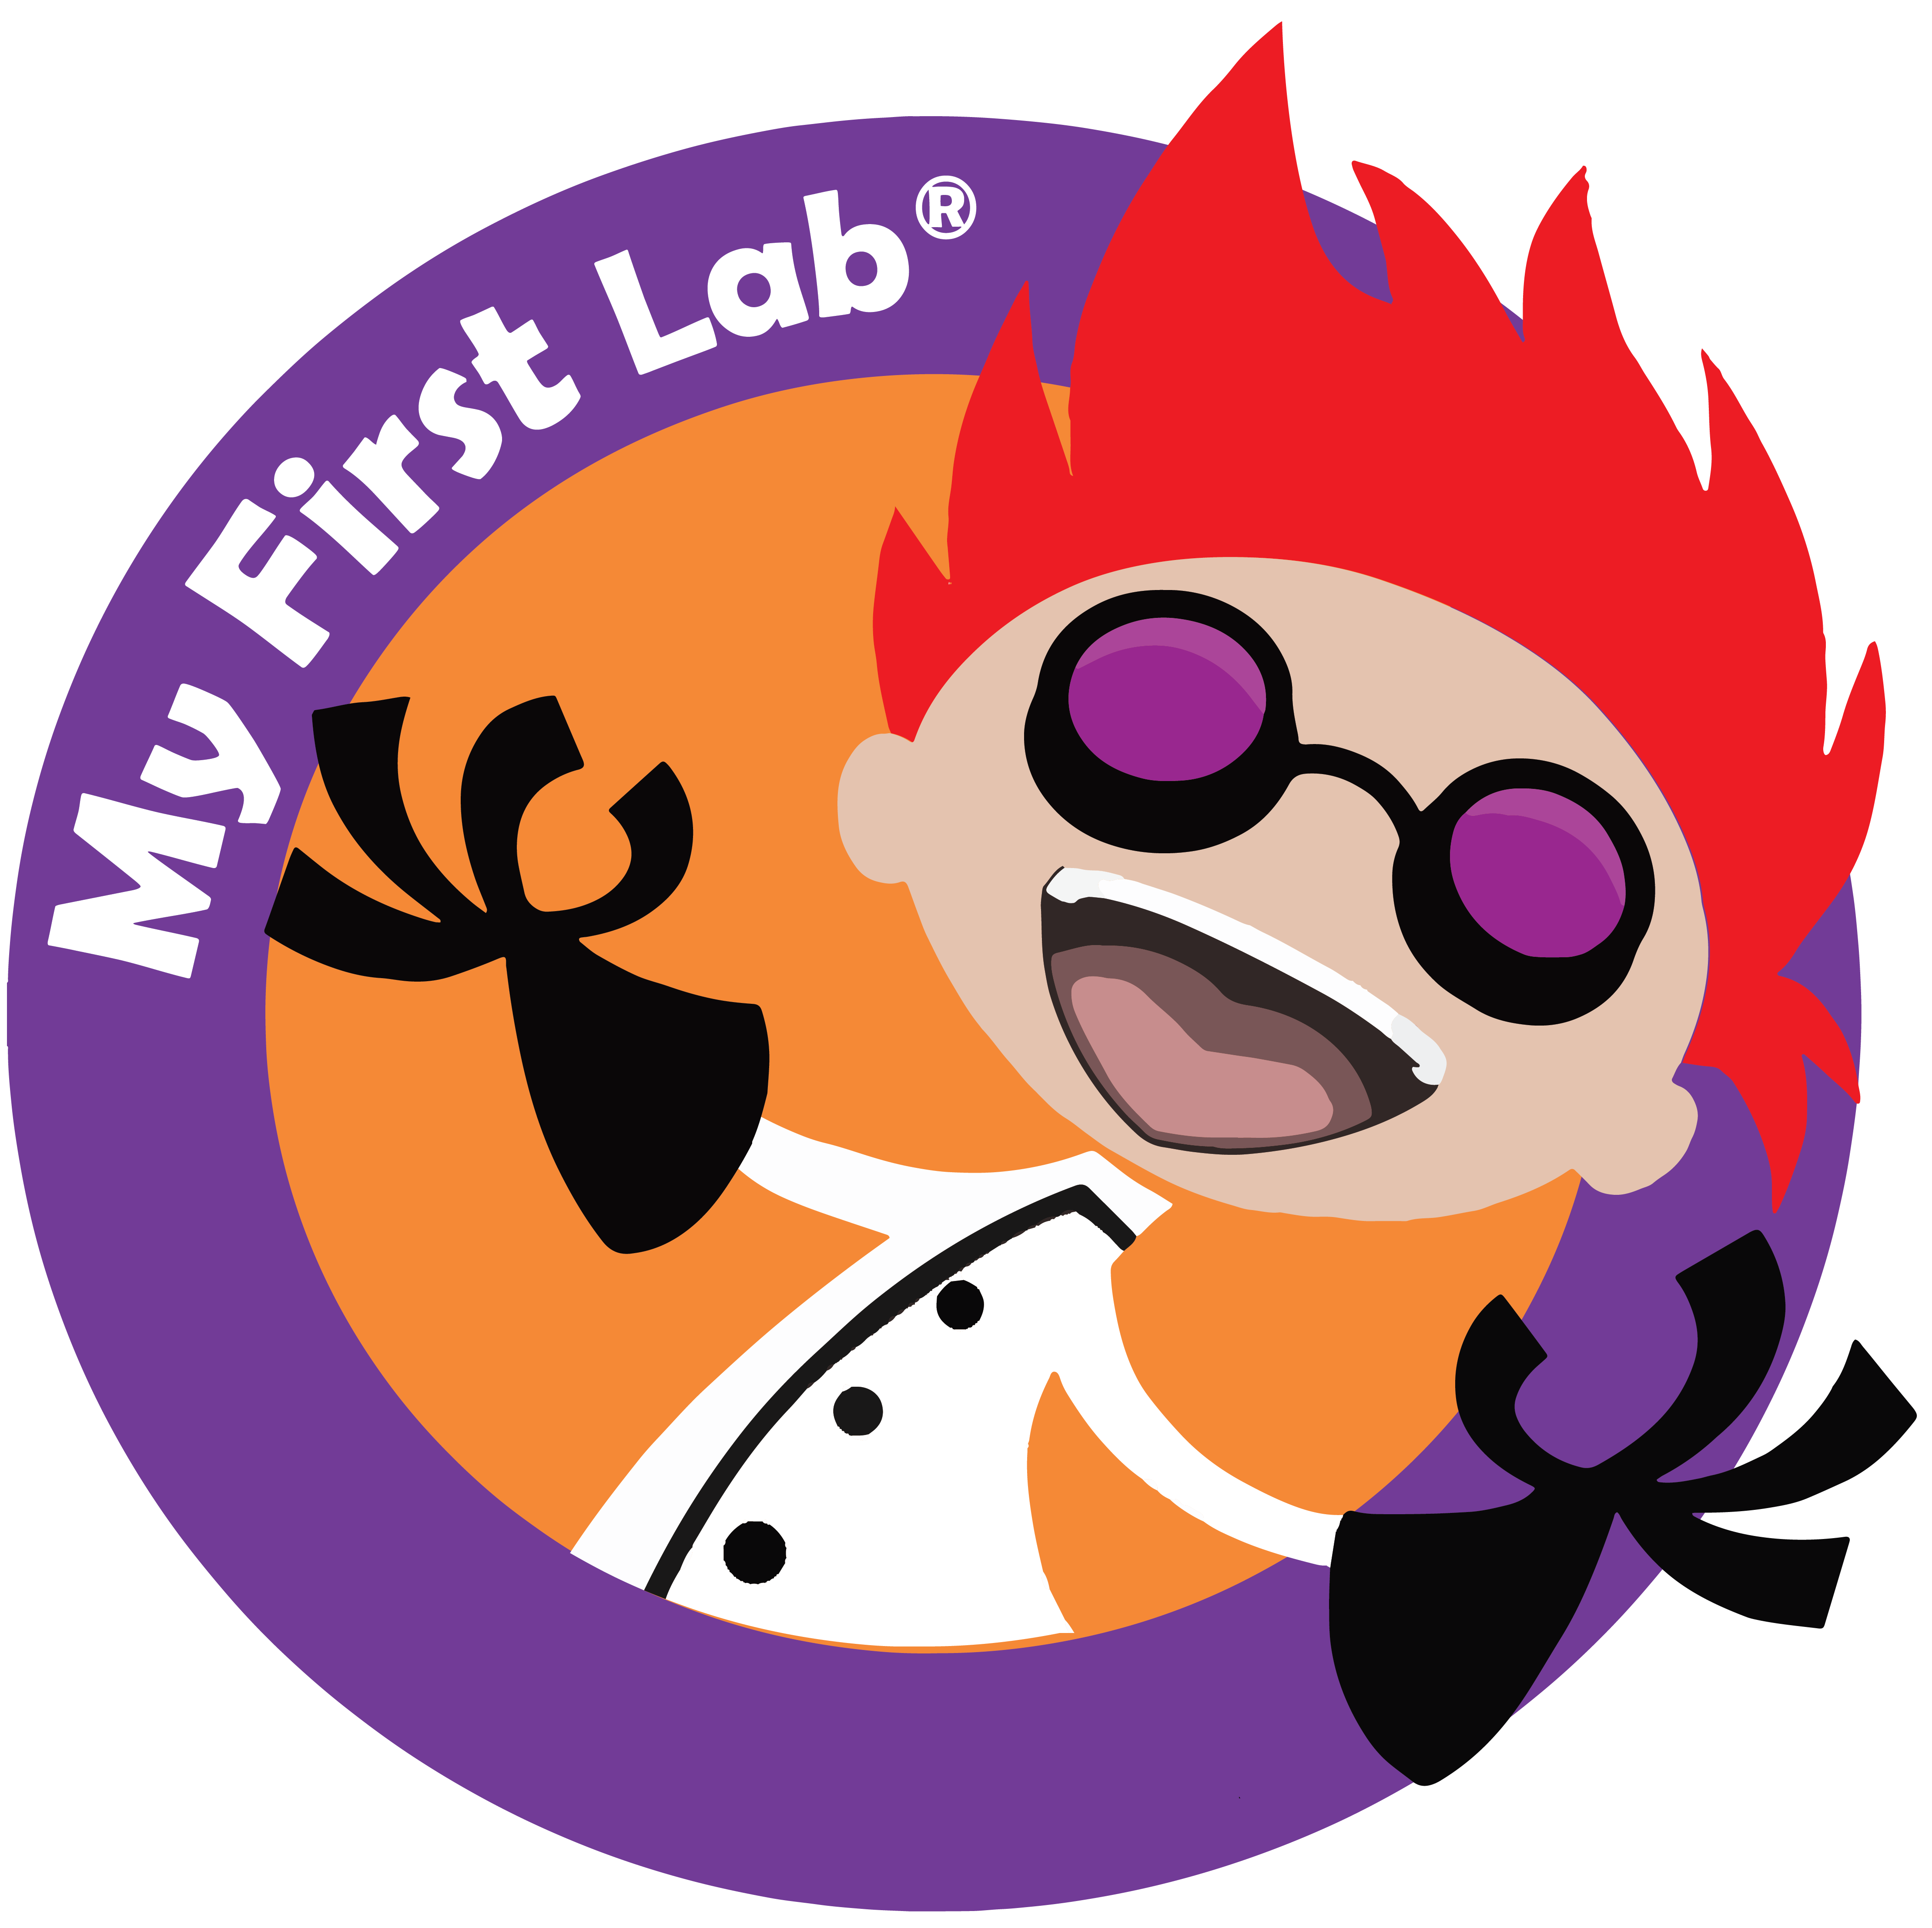 About us my first. Experiment clipart stem lab